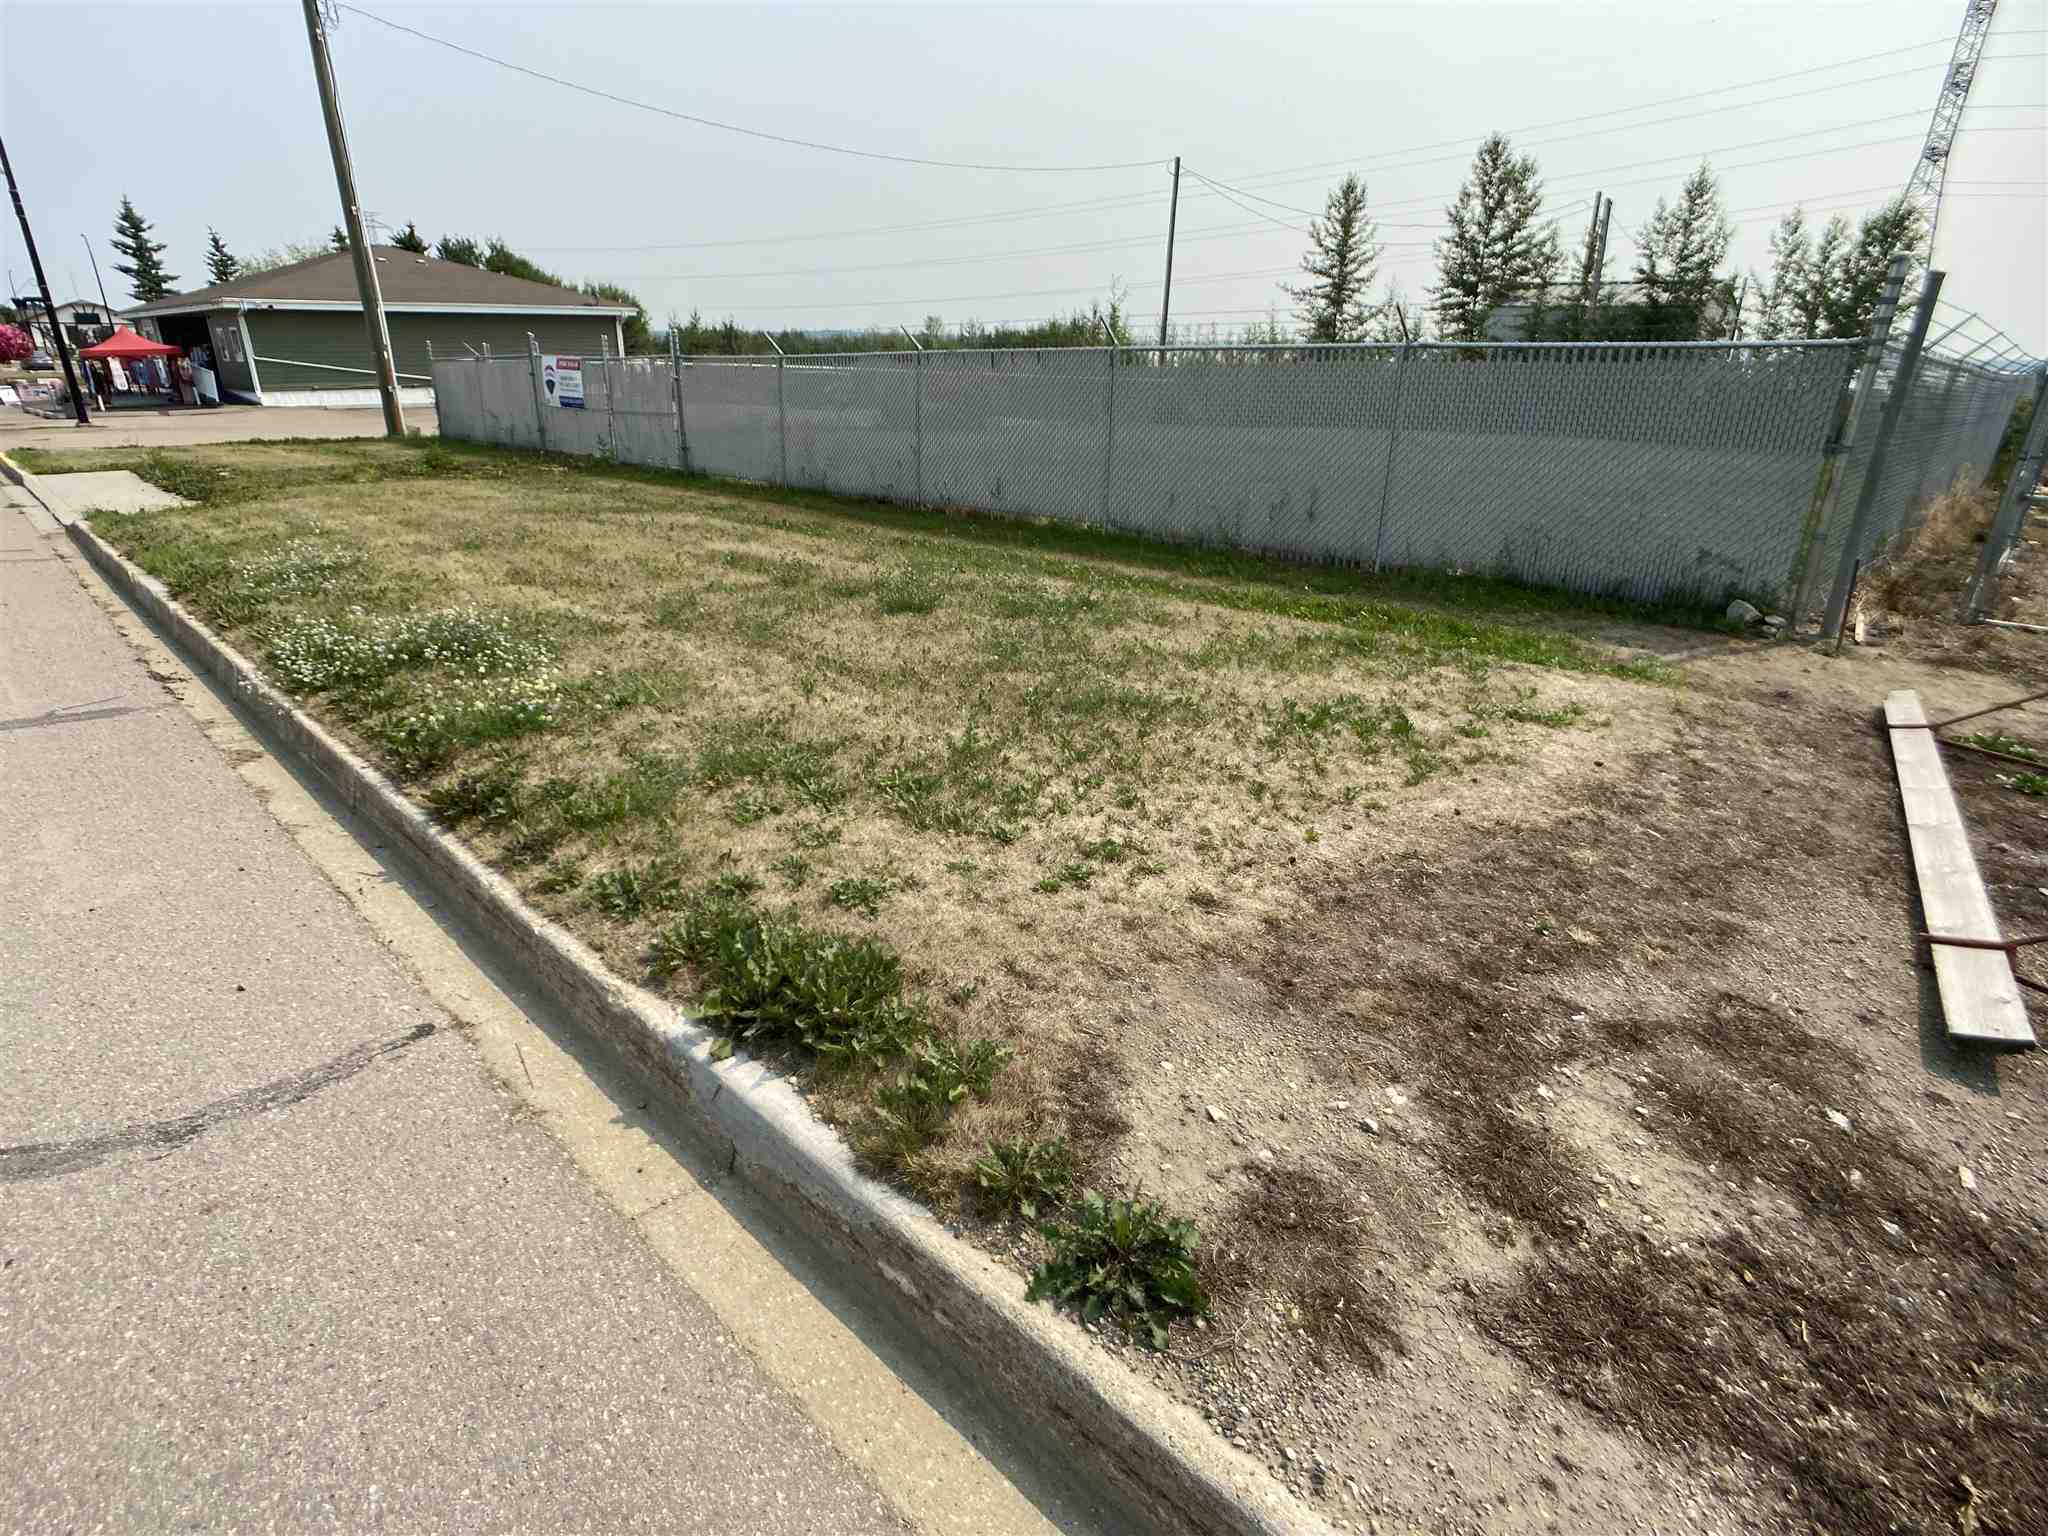 Great Commercial Location!!!  Located on the main street of the Village of Wabamun.  This spot is ready for development.  Roughly 100' x 100', the land is currently fenced.  Many options for you to build or buy & hold.